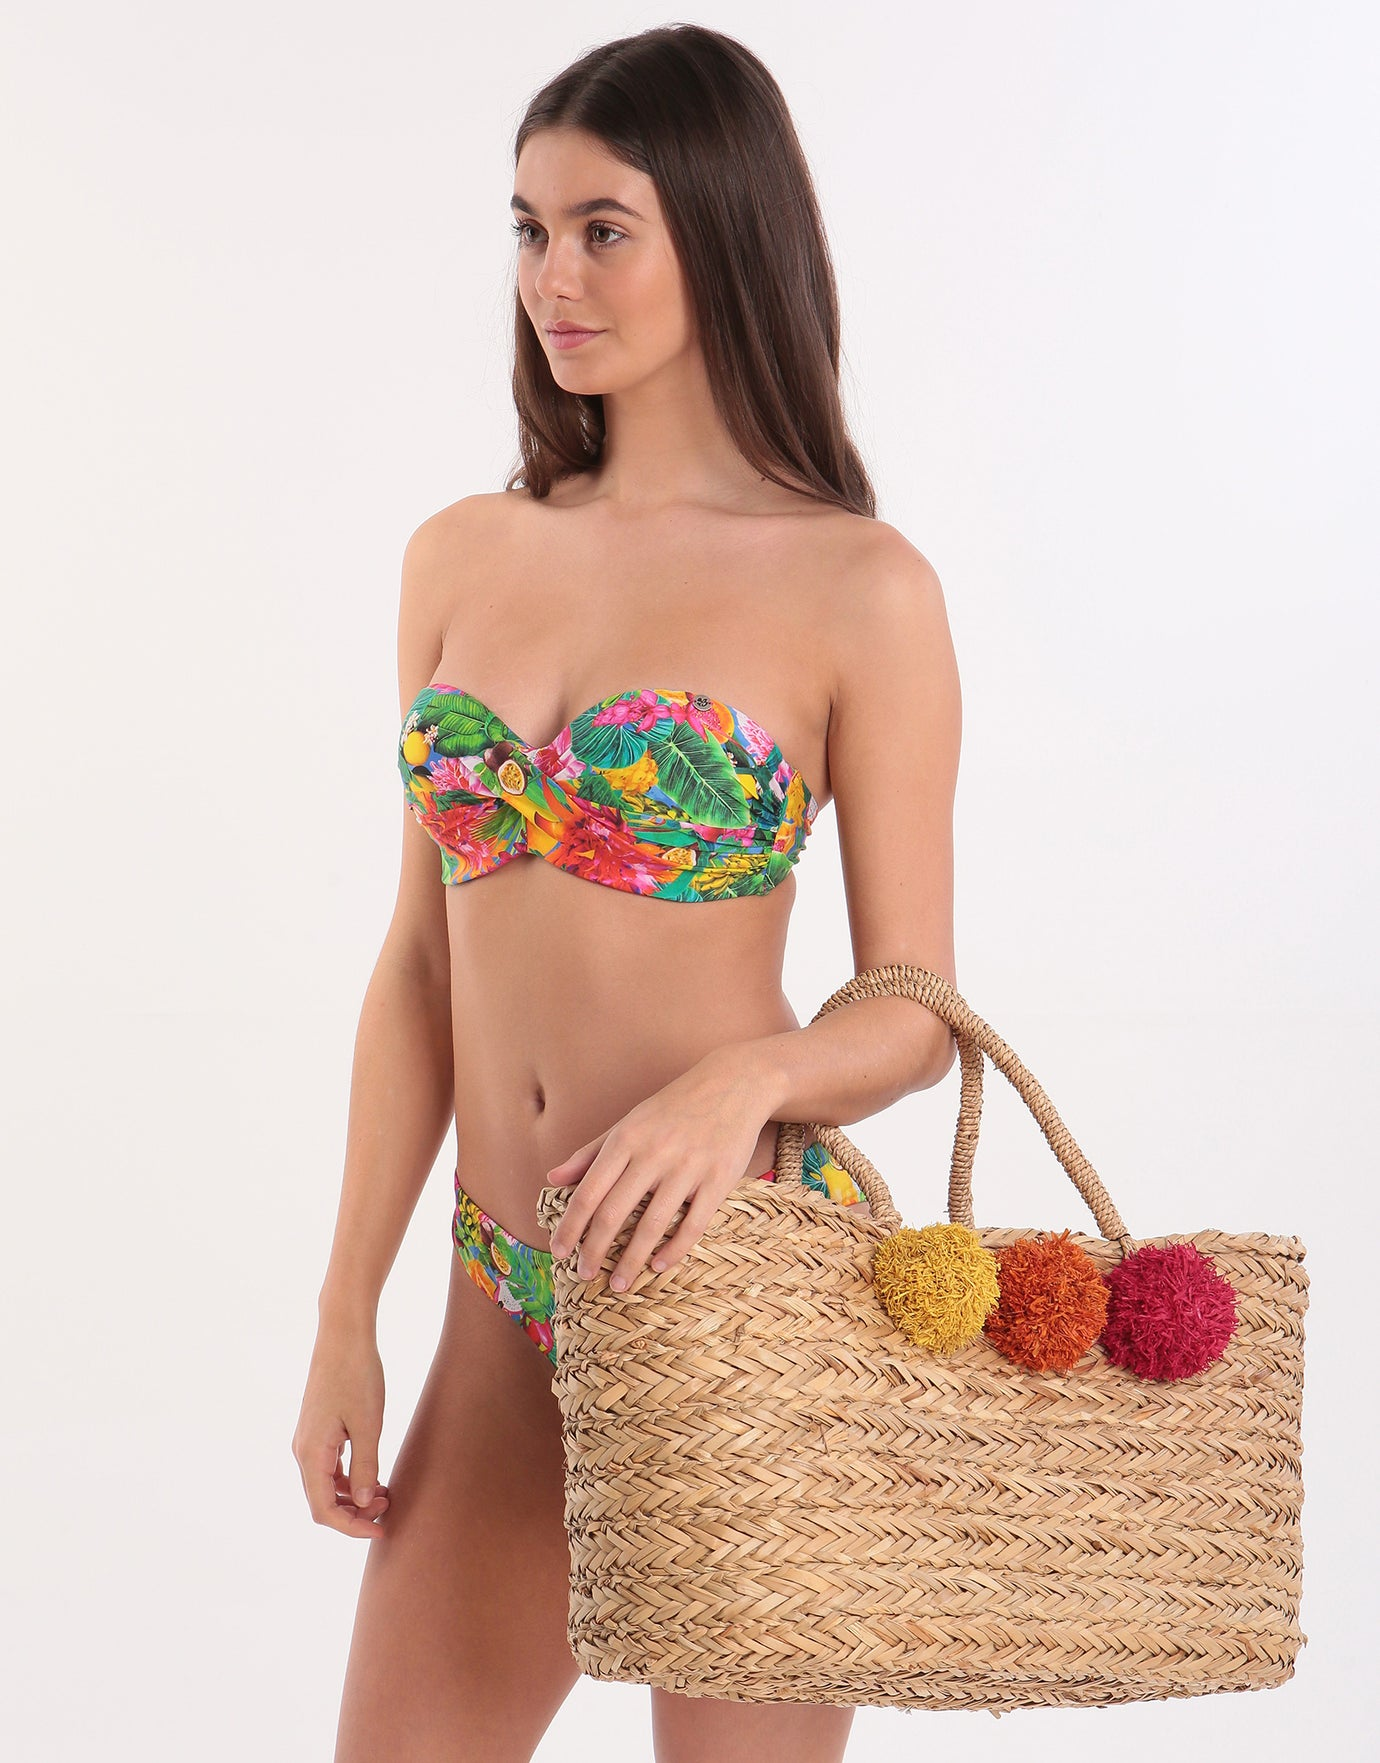 Pia Rossini Sozo Basket Bag - Natural